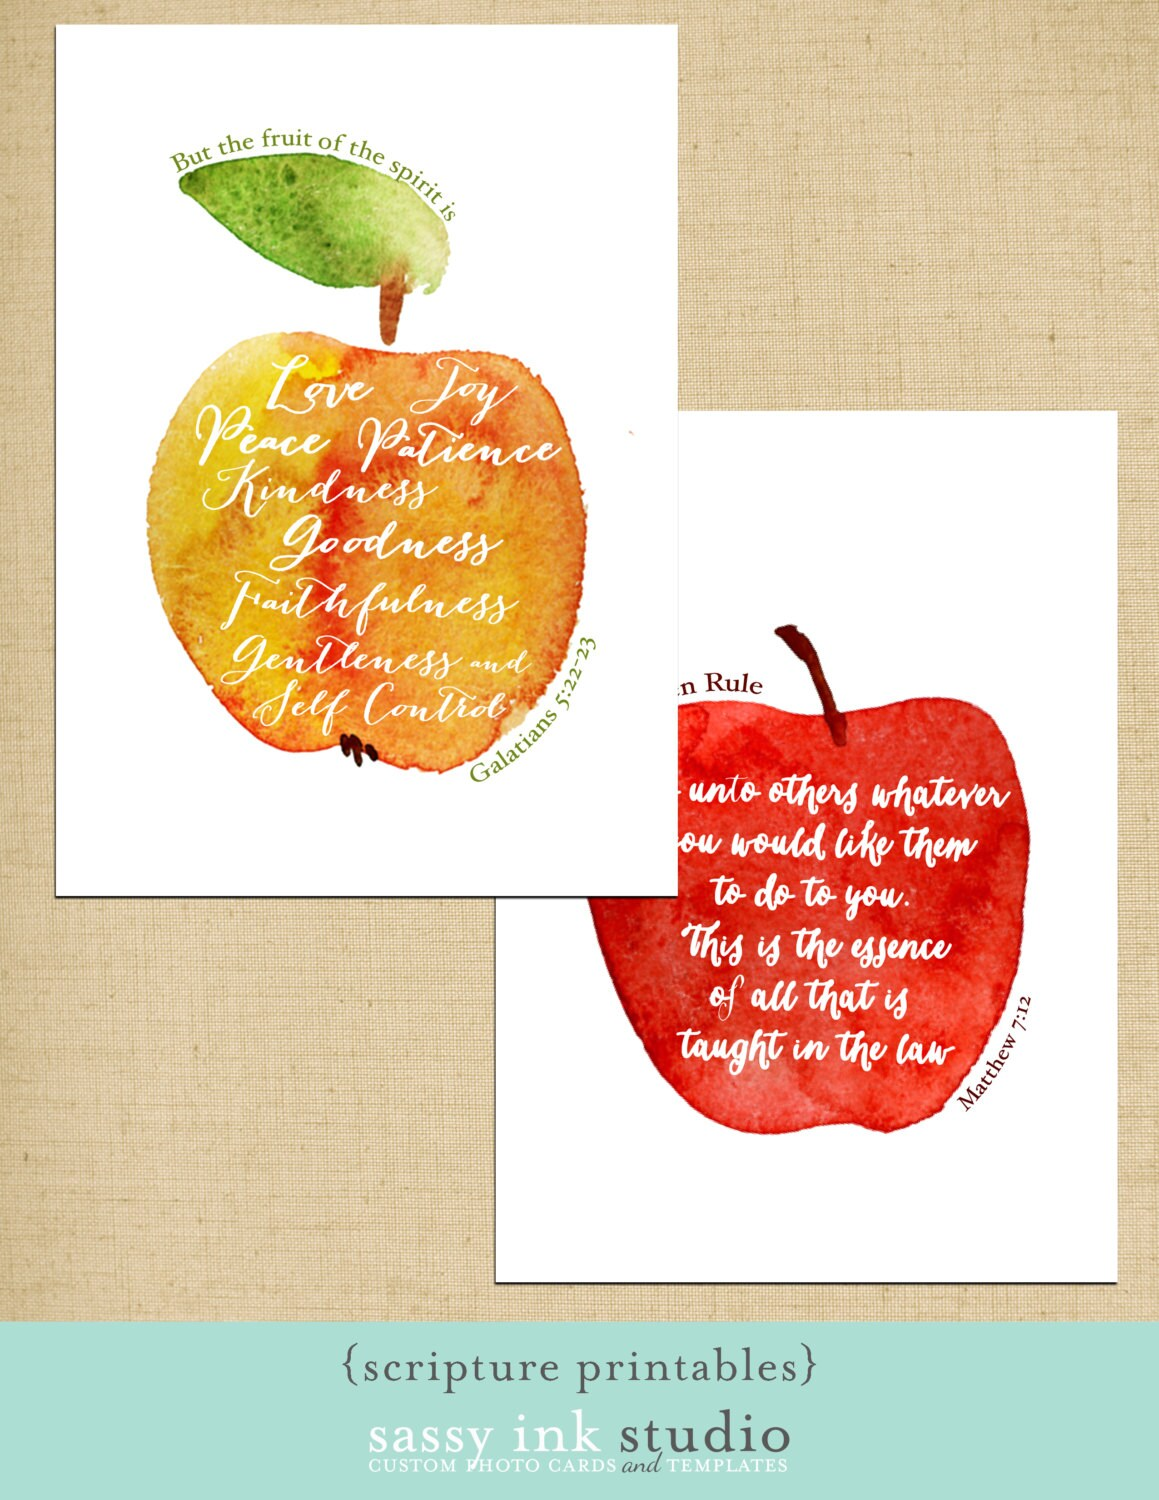 The Fruit Of The Spirit And The Golden Rule Printables Two